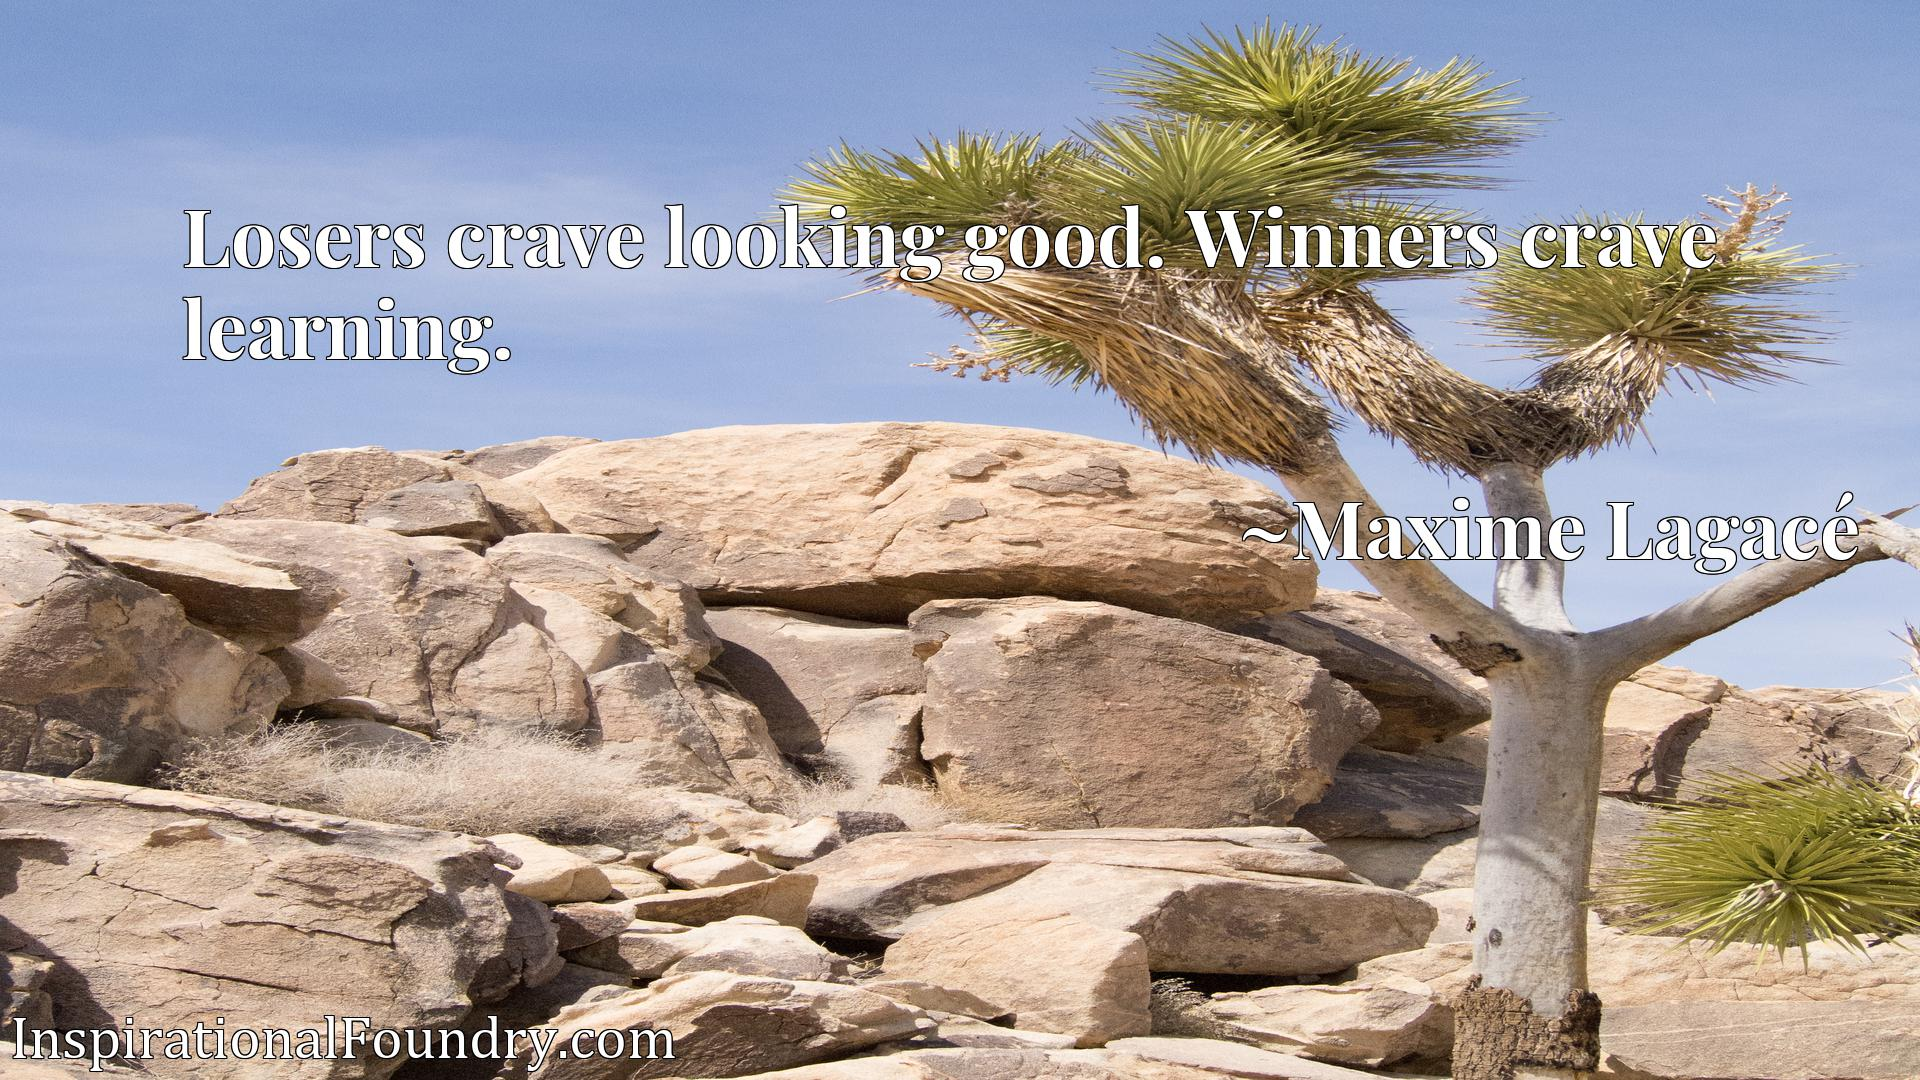 Losers crave looking good. Winners crave learning.